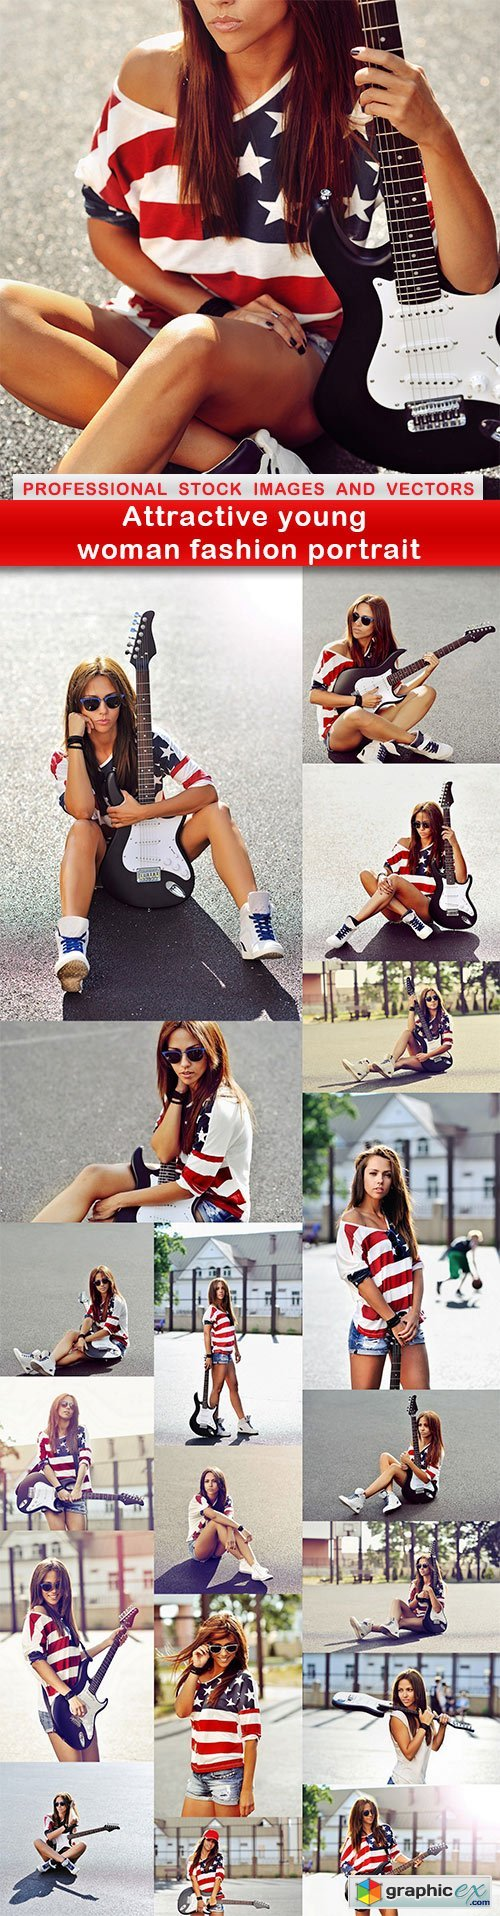 Attractive young woman fashion portrait - 19 UHQ JPEG